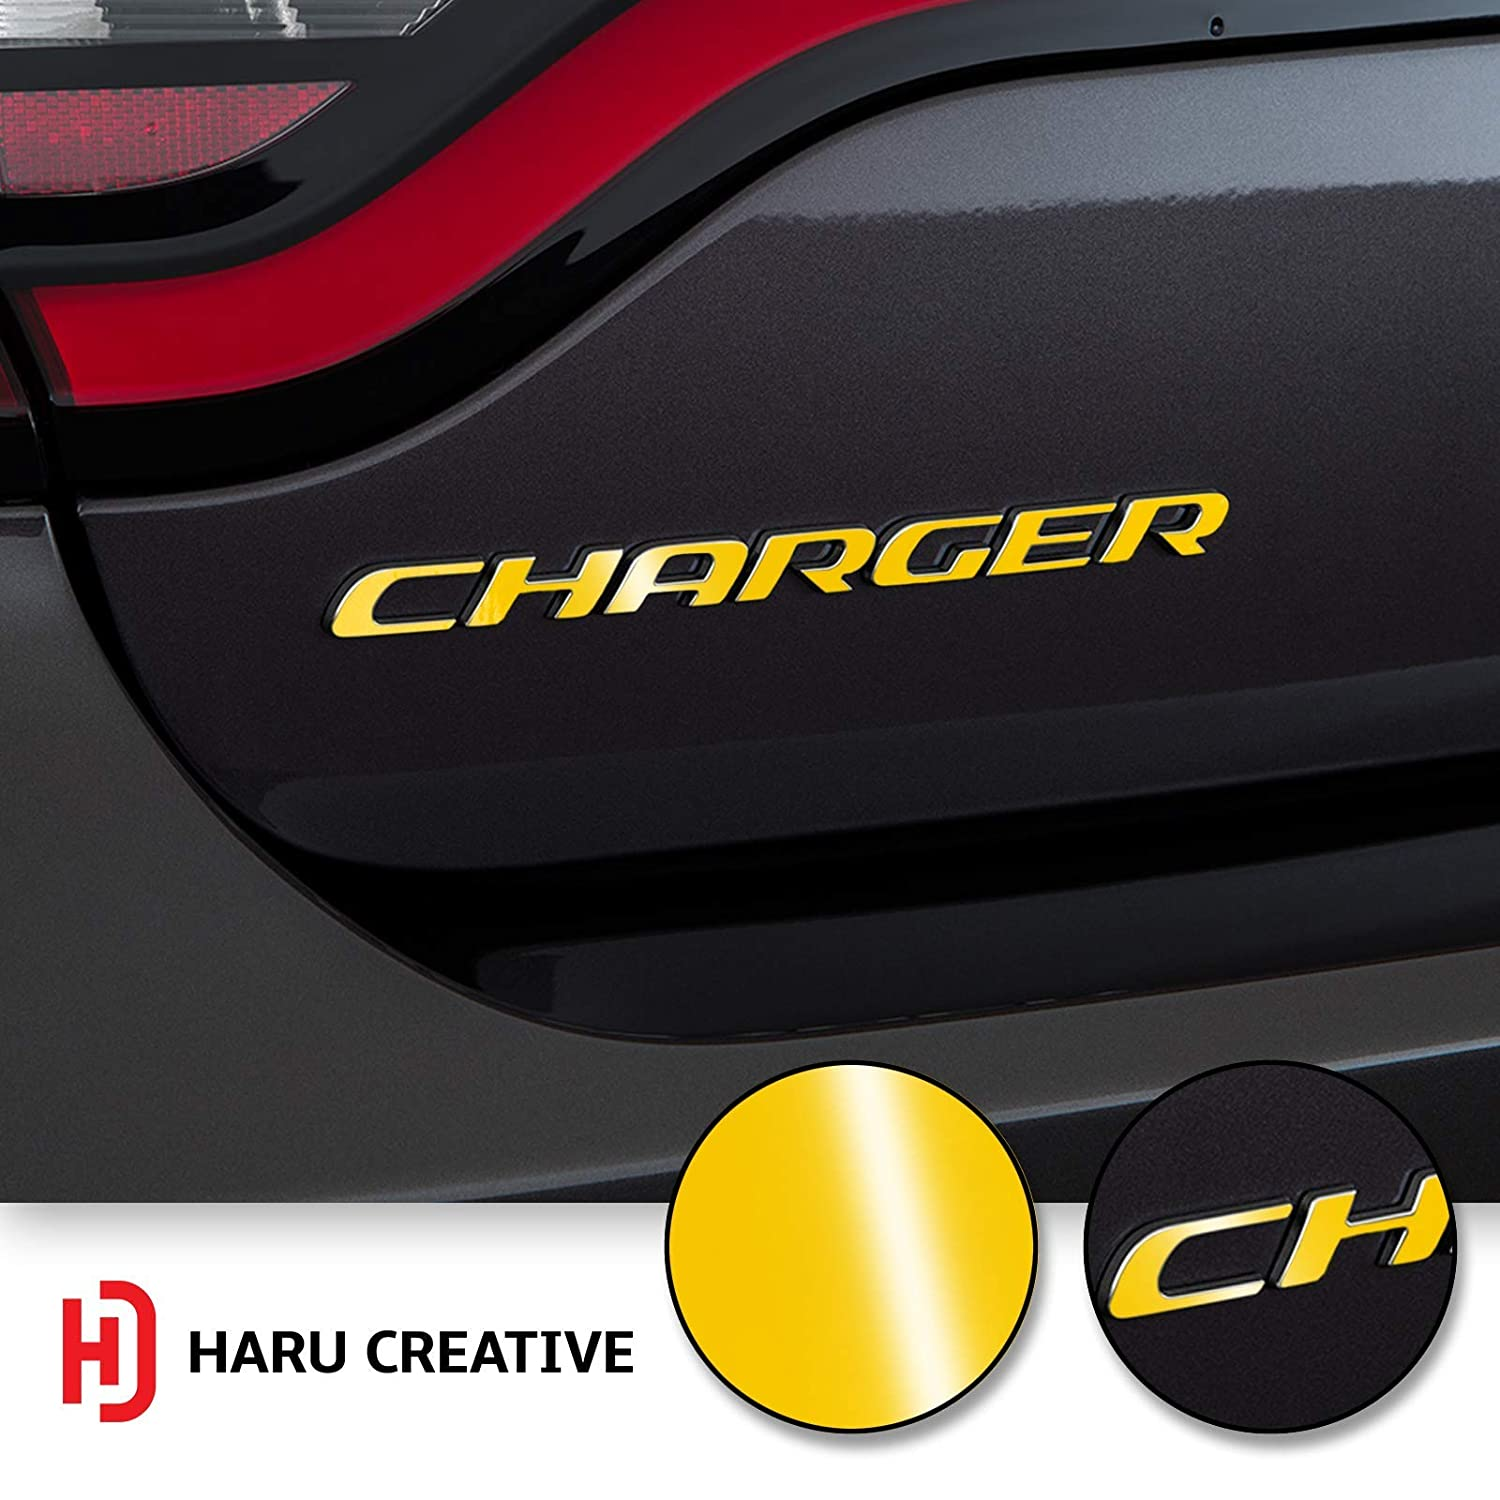 Haru Creative Rear Bumper Trunk Emblem Overlay Vinyl Car Decal Sticker Compatible with and Fits Dodge Charger 2015 2016 2017 2018 2019 Gloss Yellow